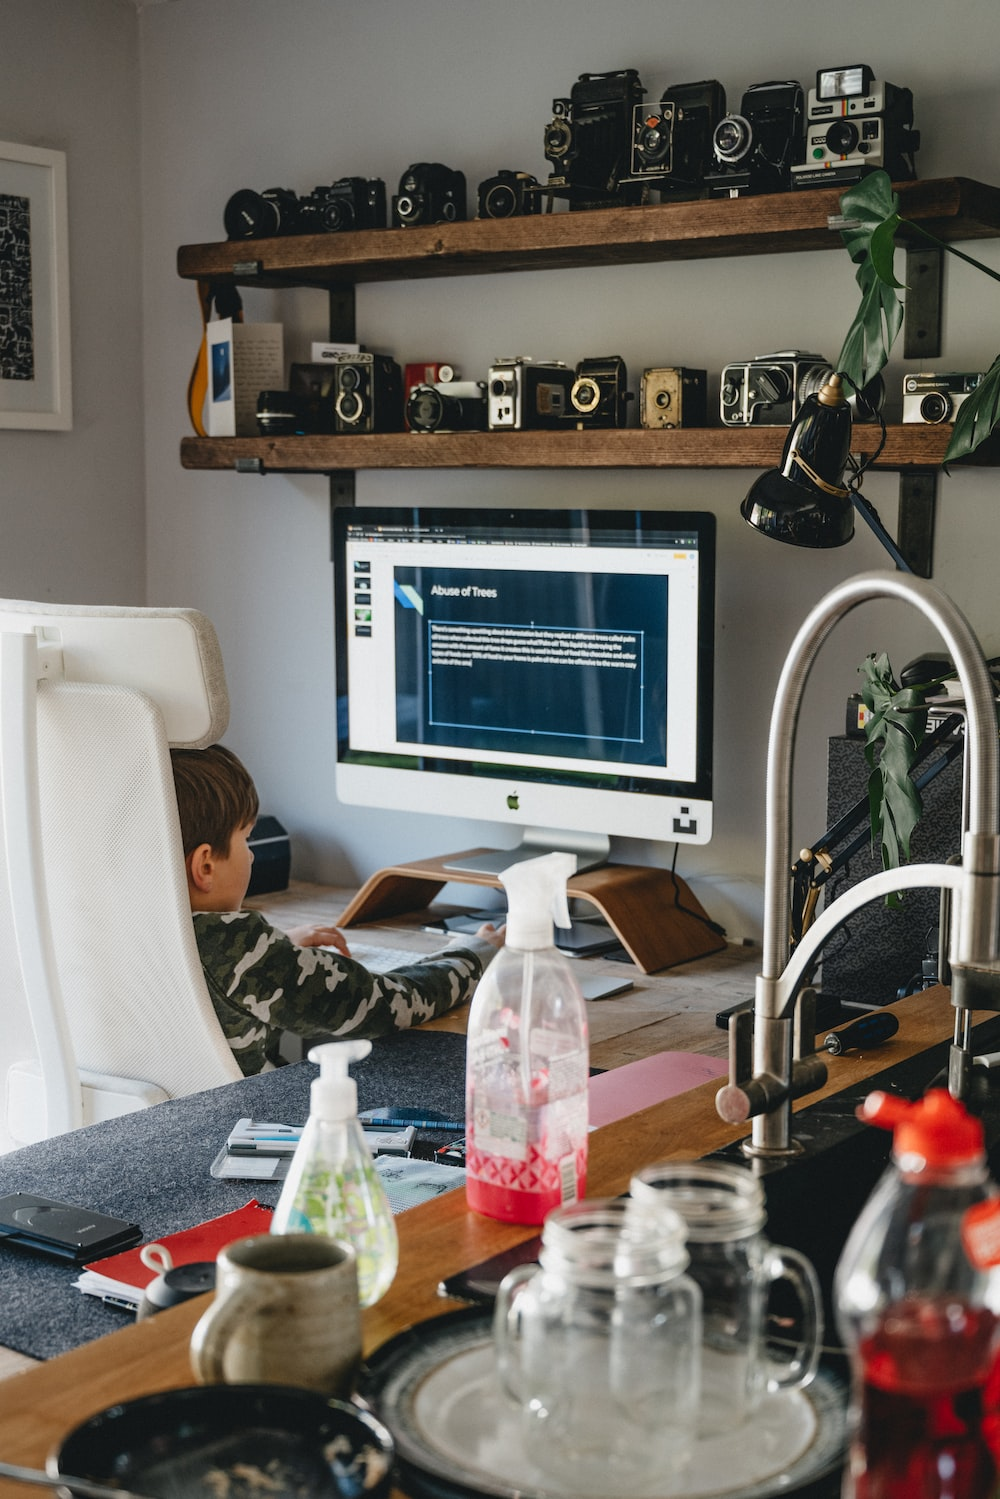 white flat screen computer monitor on brown wooden table